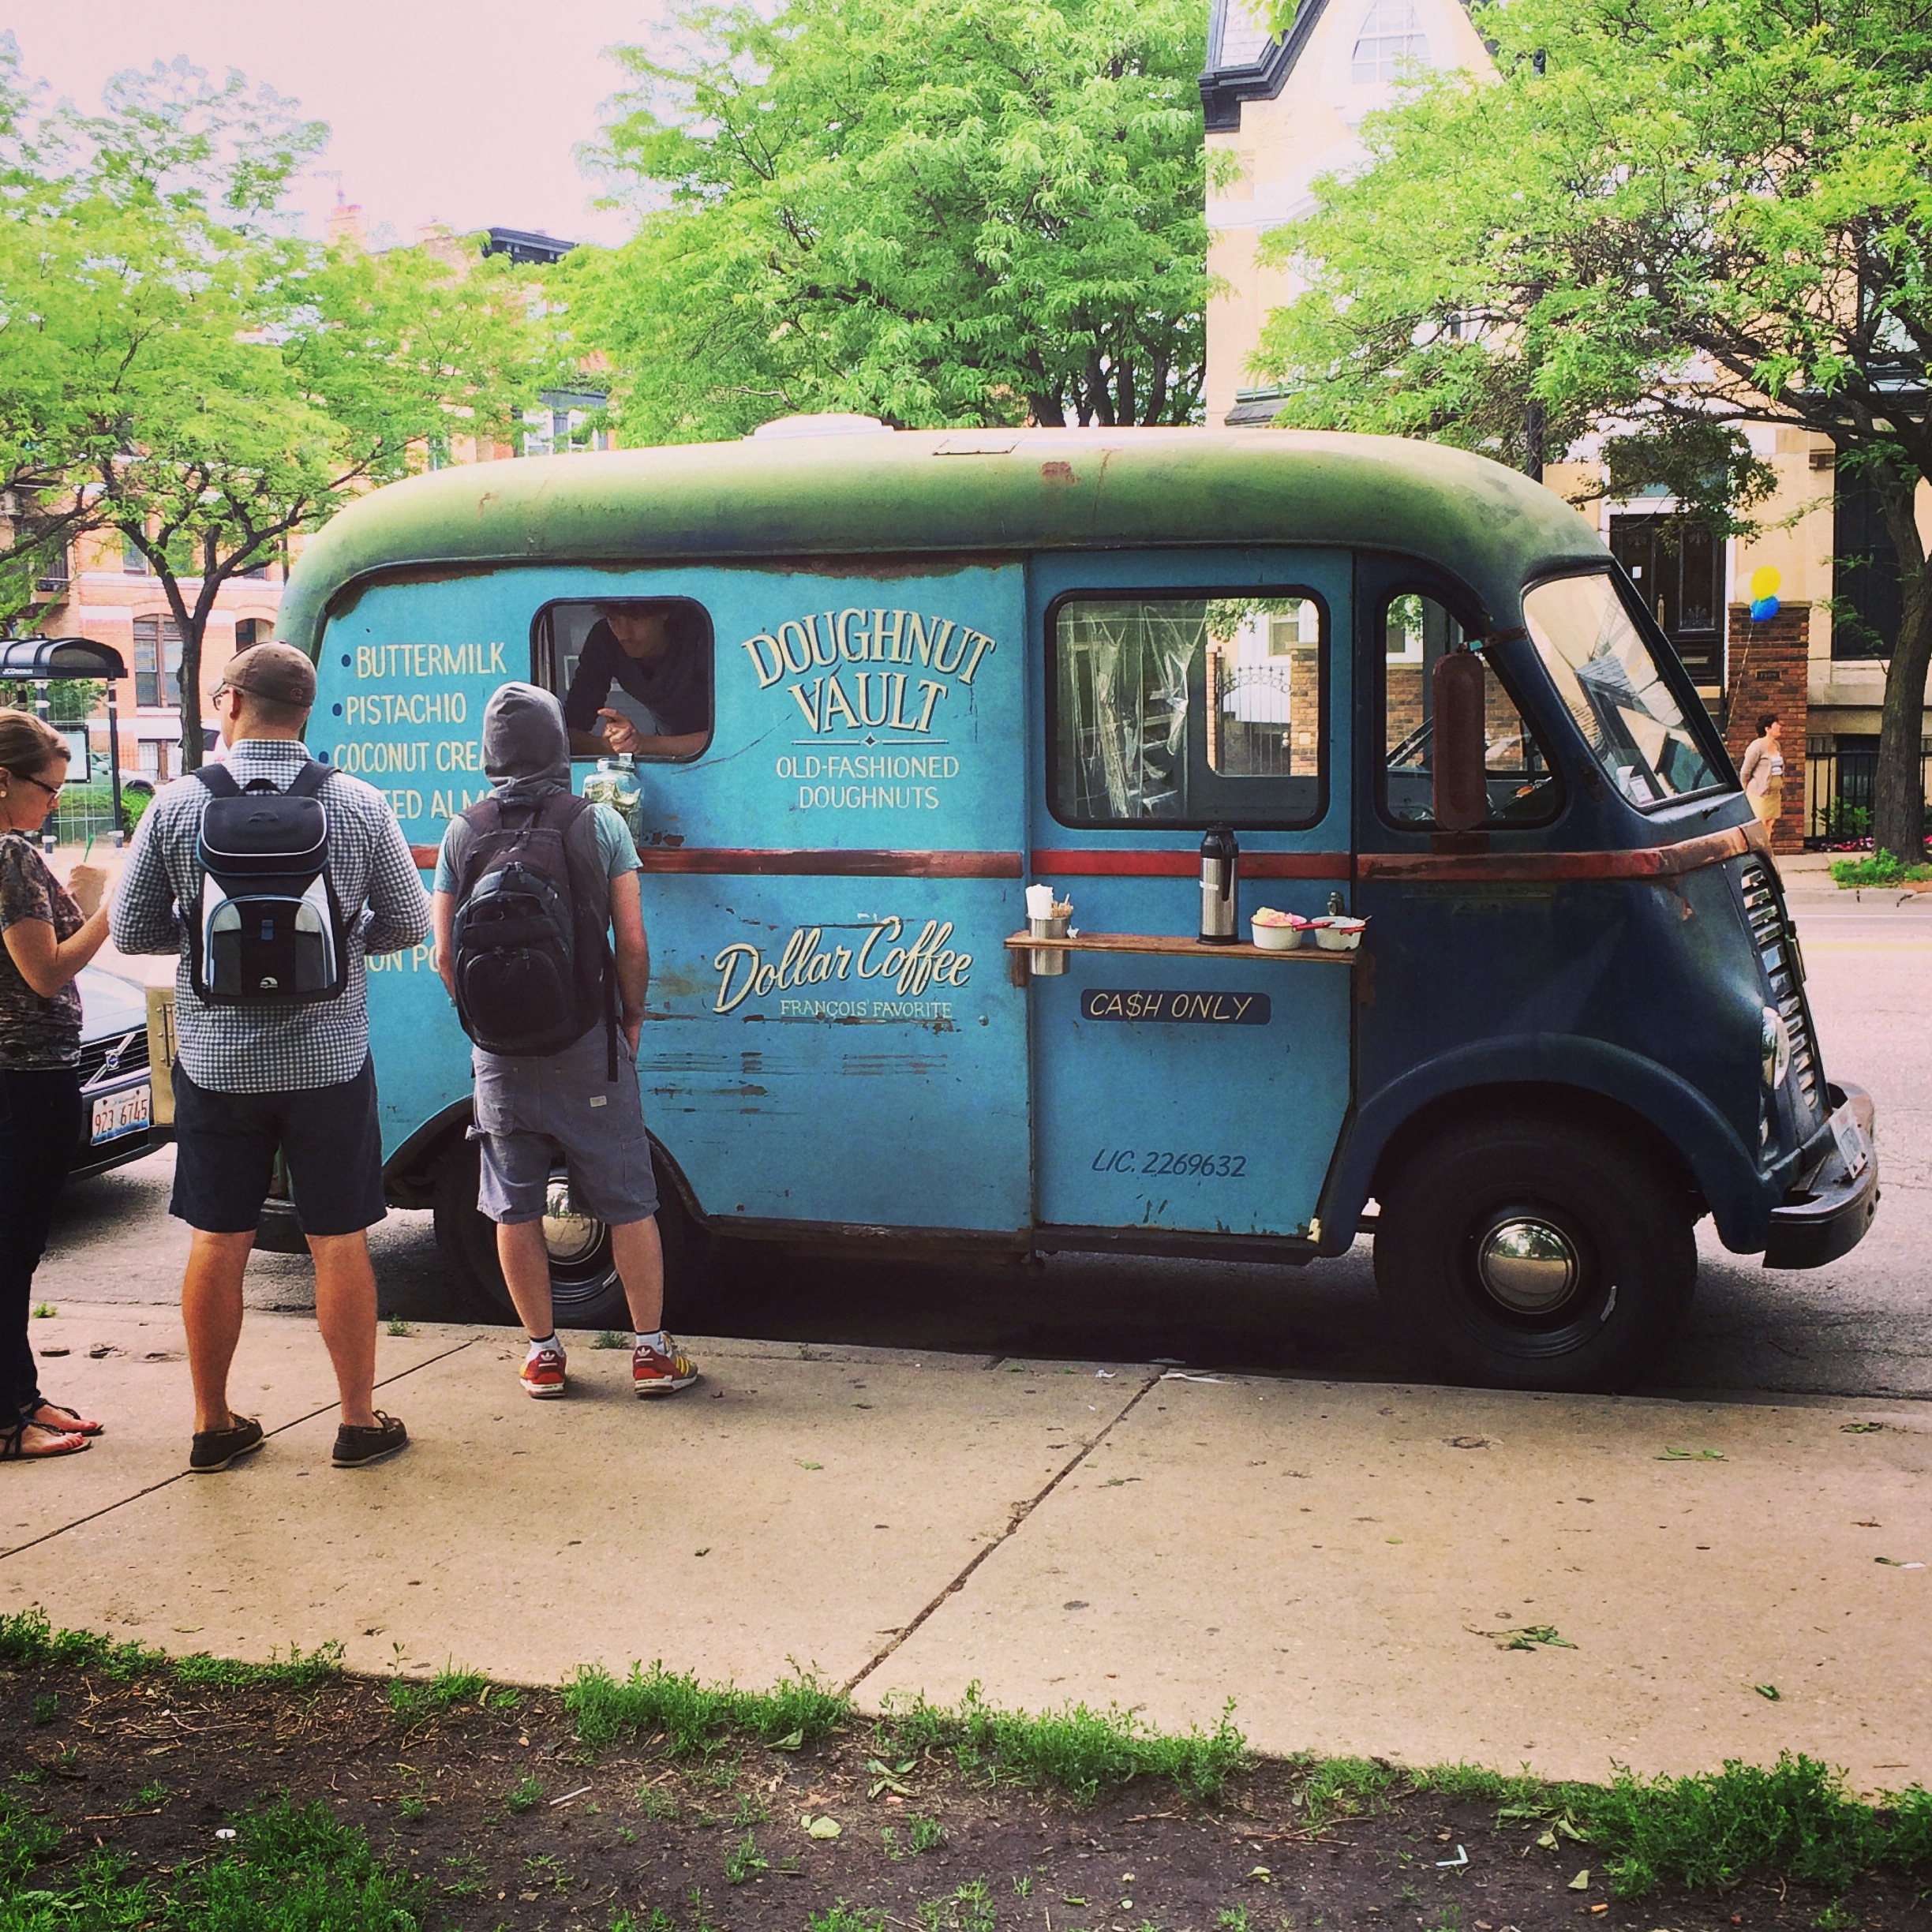 Doughnut Vault  donuts are my absolute fave! And how adorable is their doughnut truck?